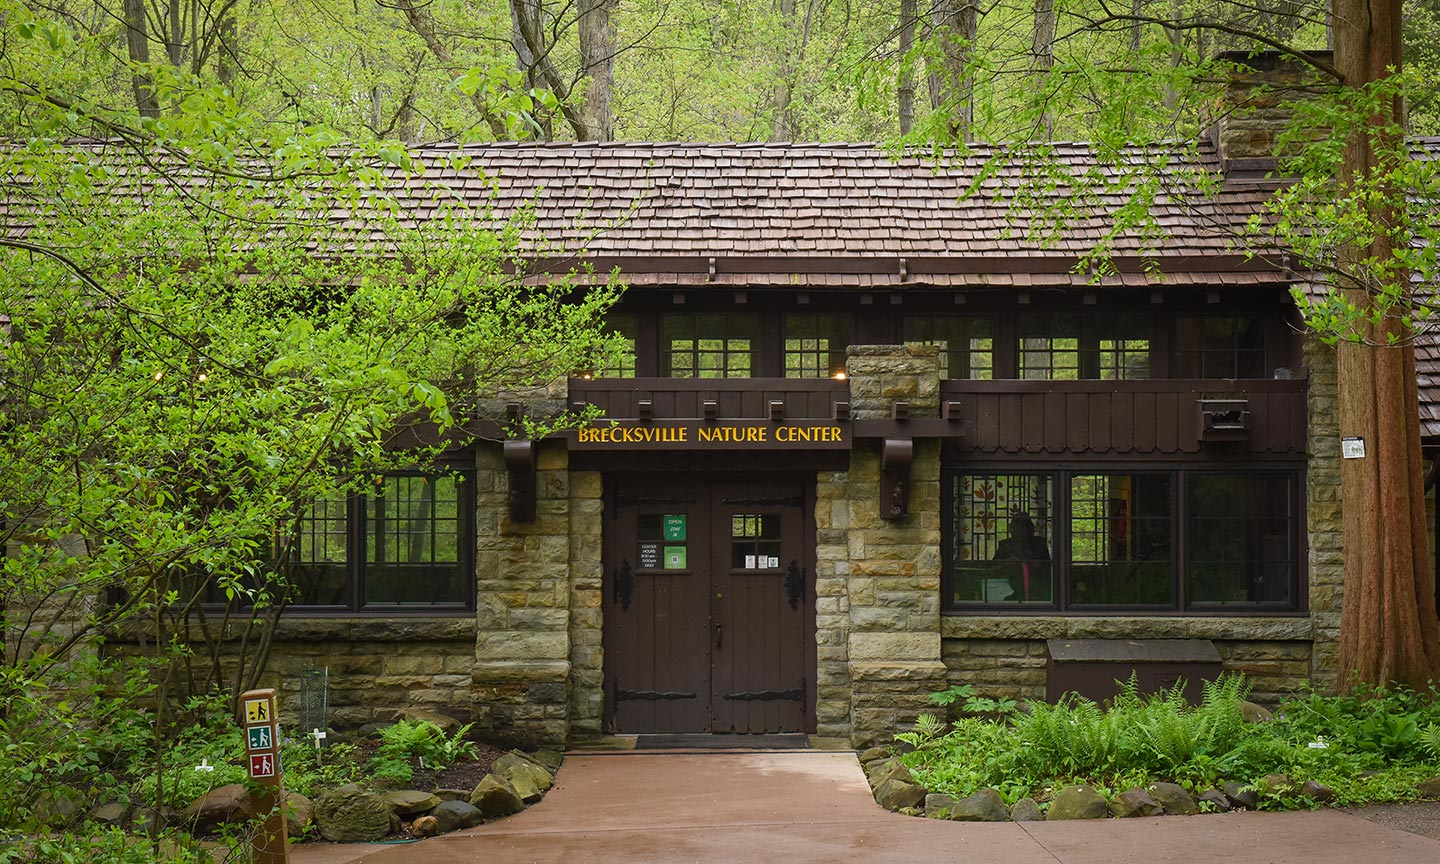 Brecksville Nature Center